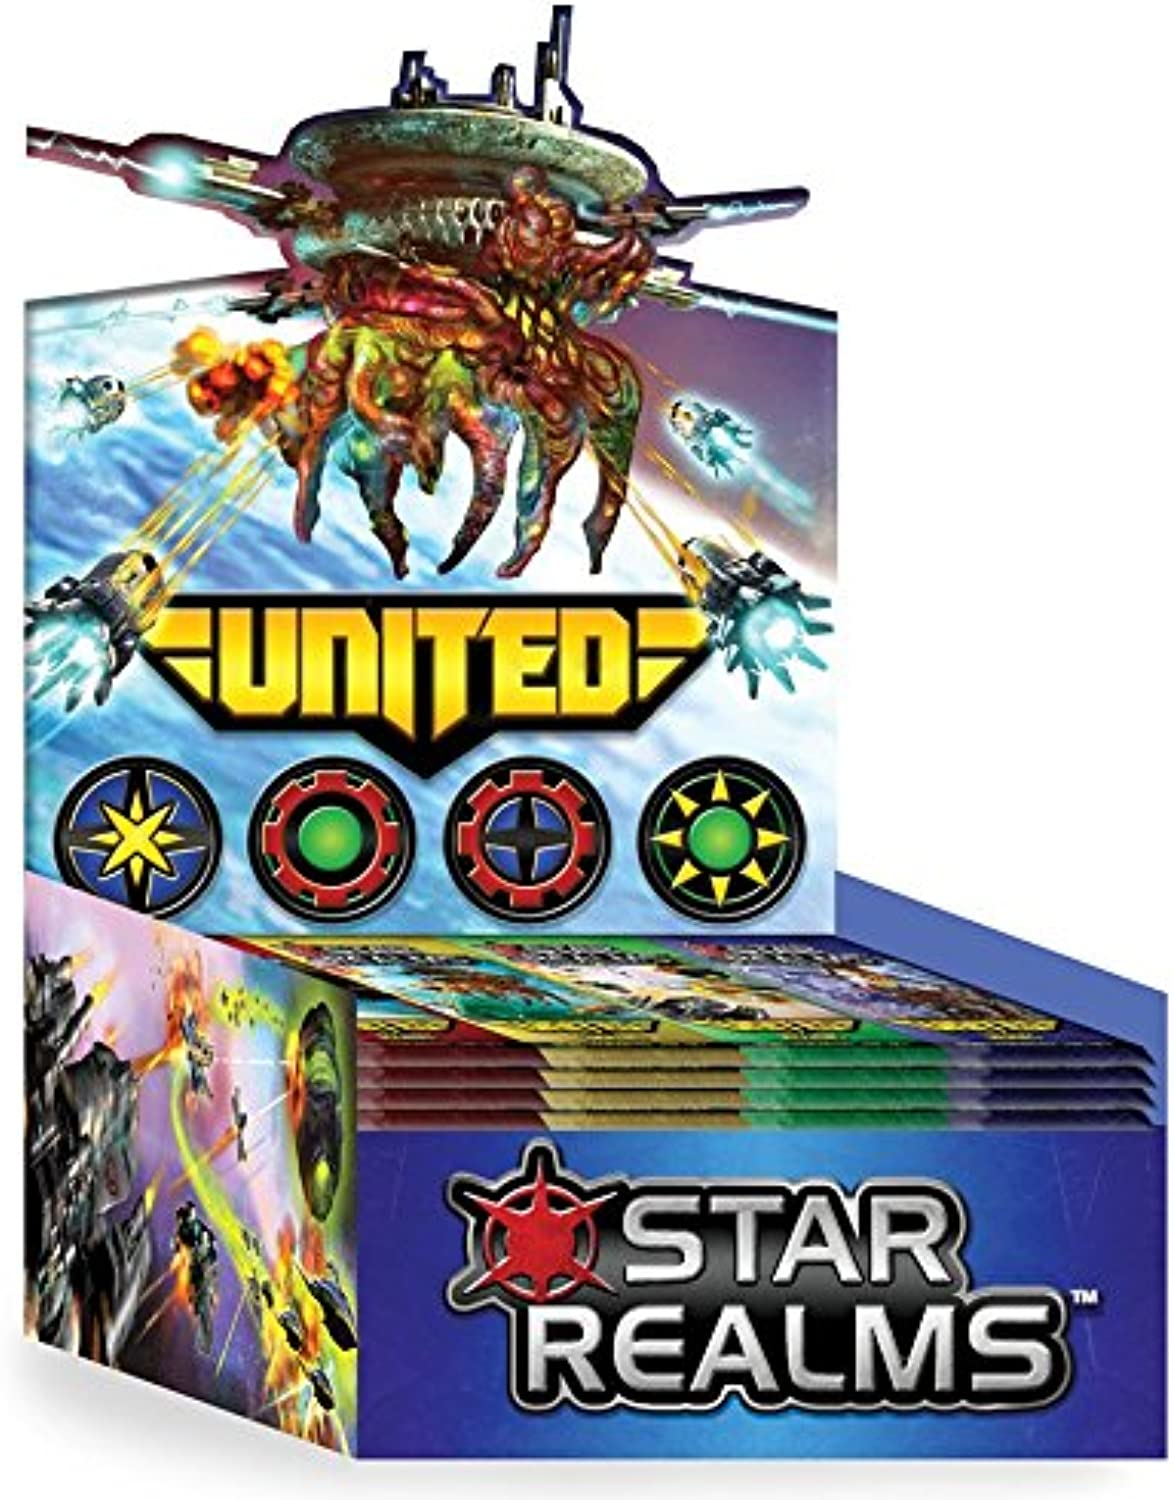 White Wizard Games WWG018 Star Realms United Display Card Games